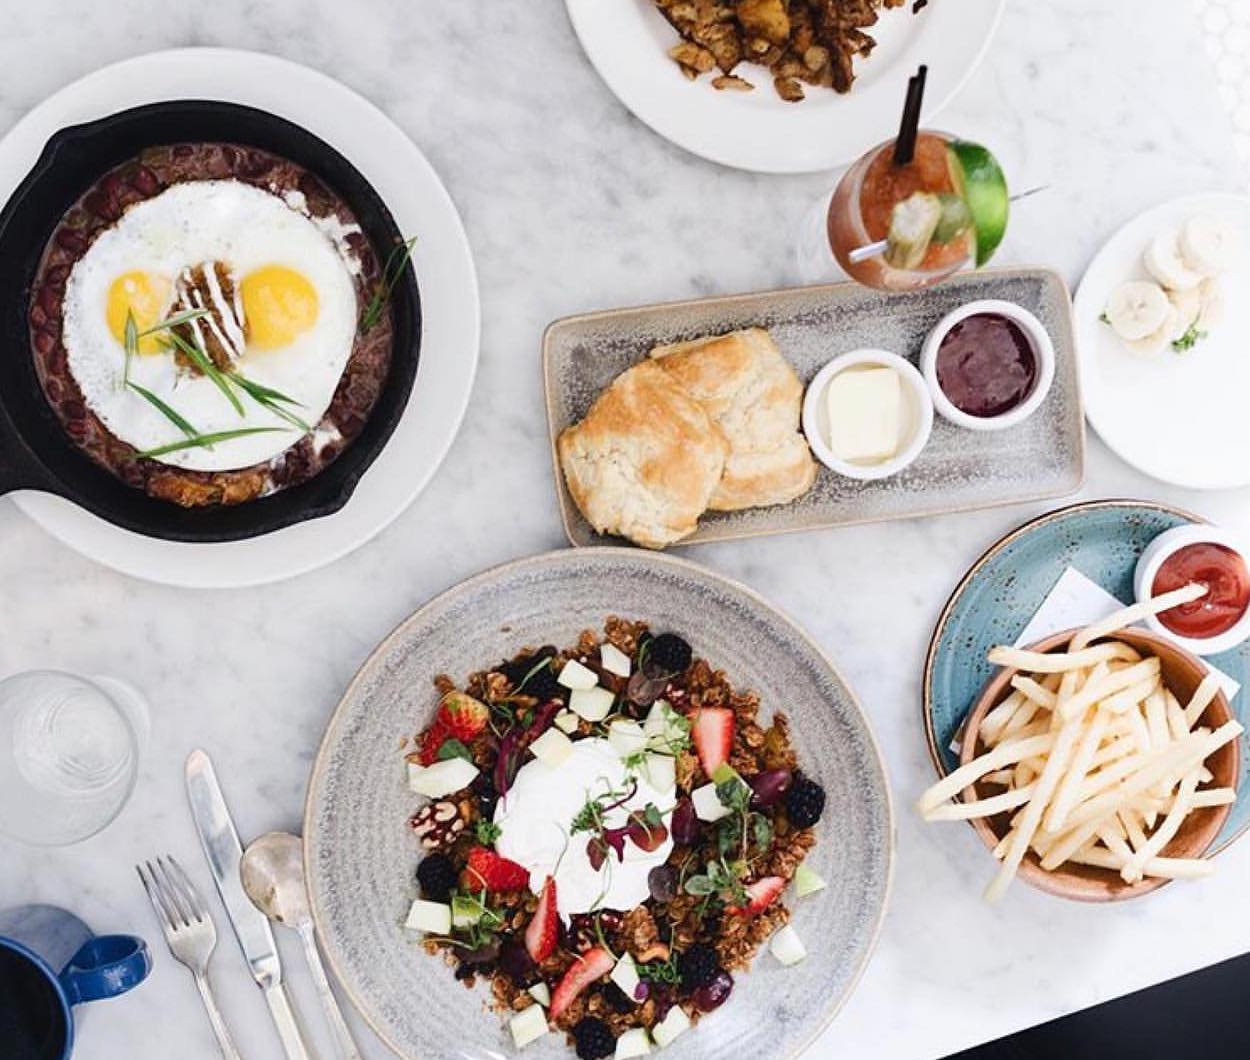 A spread of eats at Elite Cafe